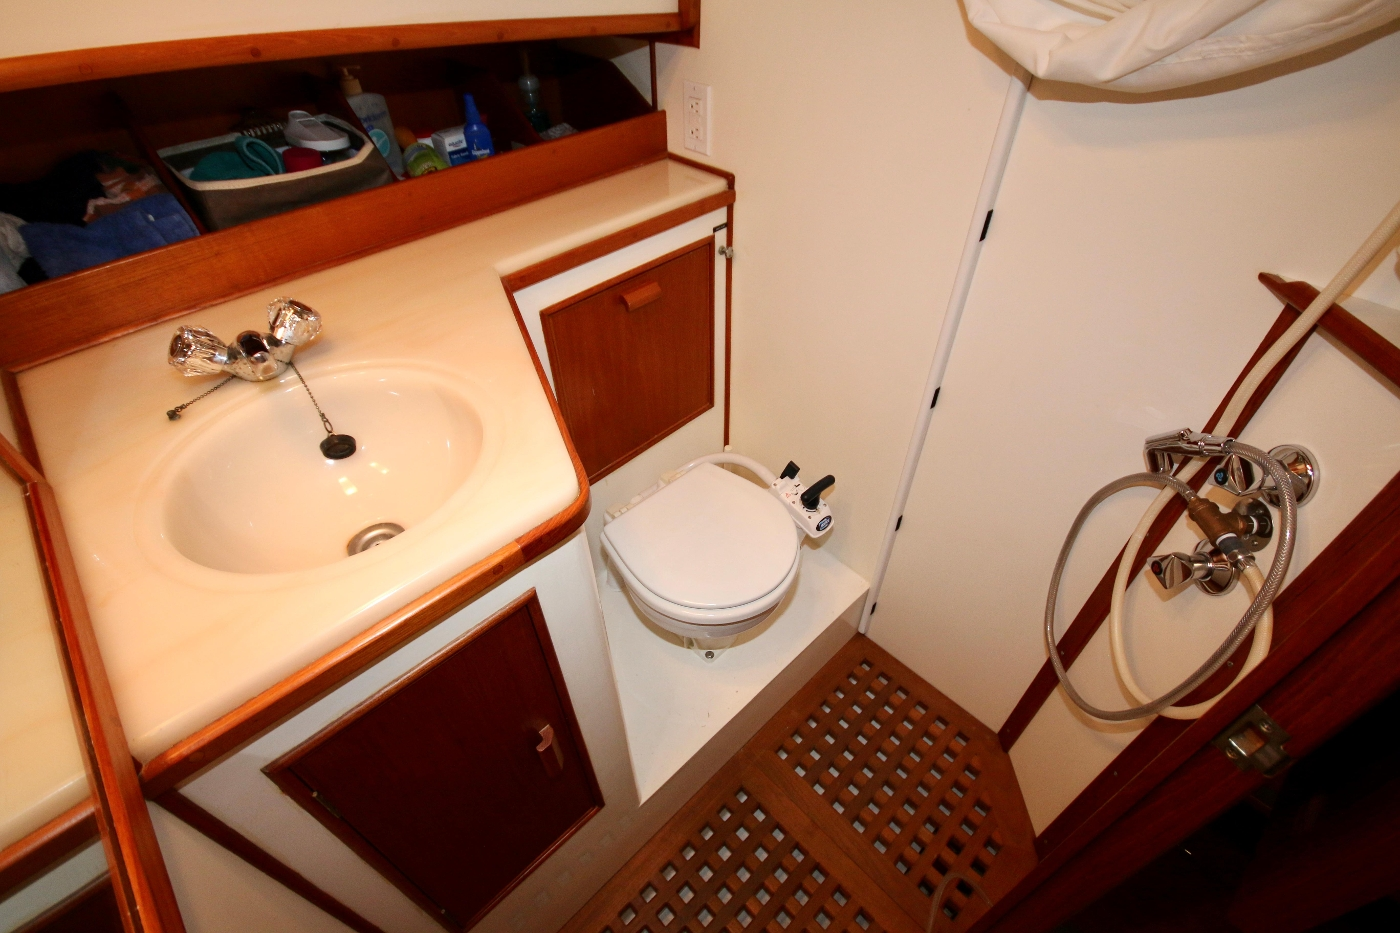 1988 Grand Banks 32, Head with Shower